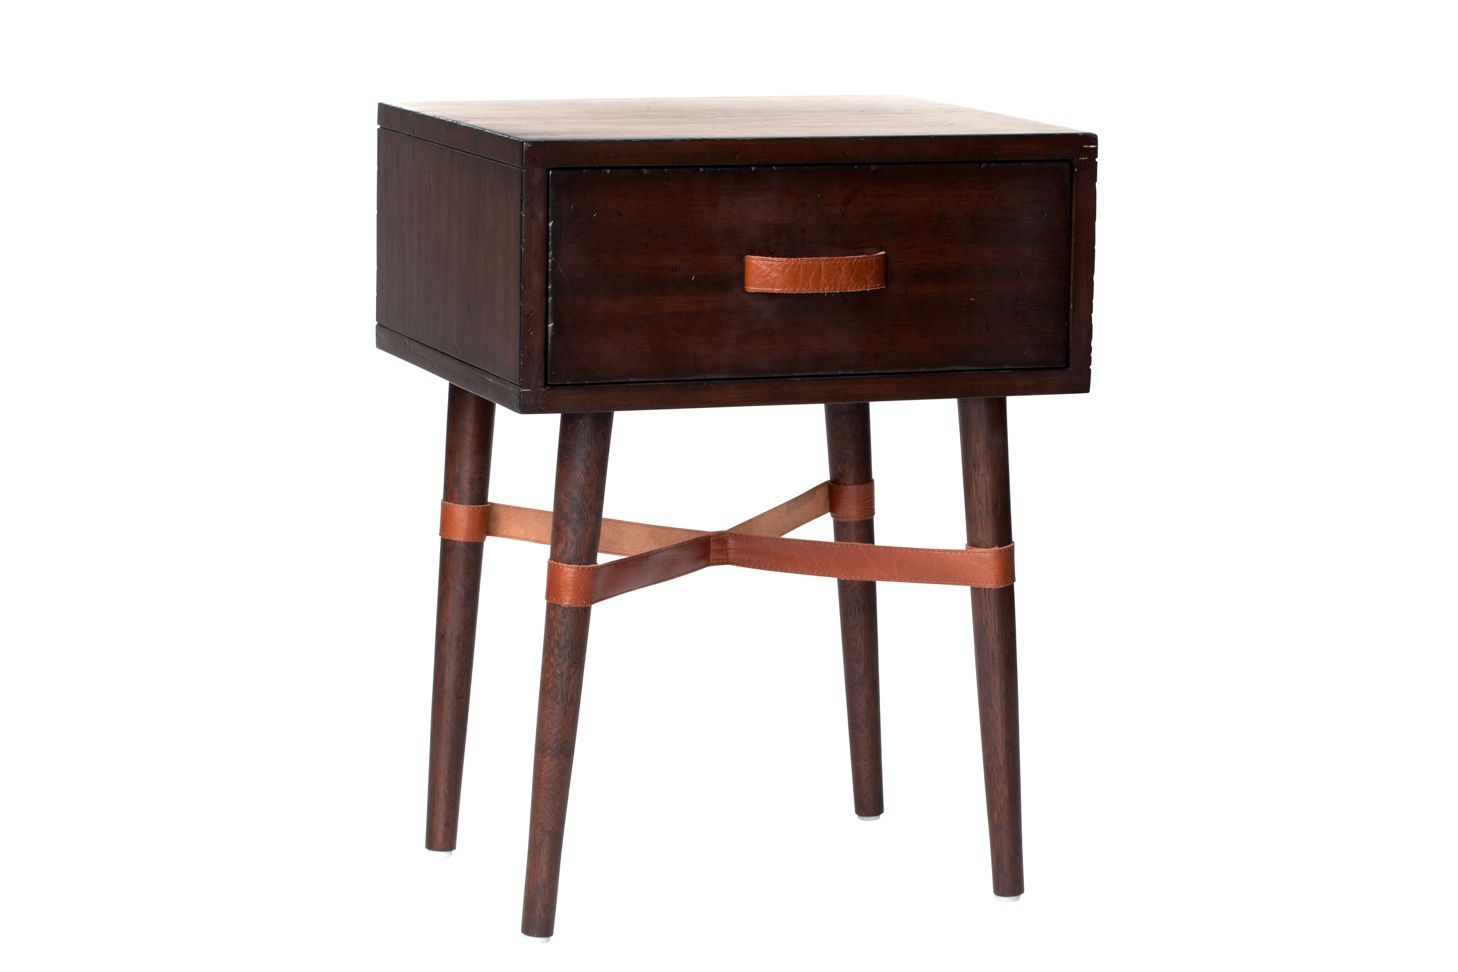 the best home from target new collection drawer accent table buffet cabinet sauder end tables occassional west elm small dining lamp design narrow entryway furniture coffee kijiji